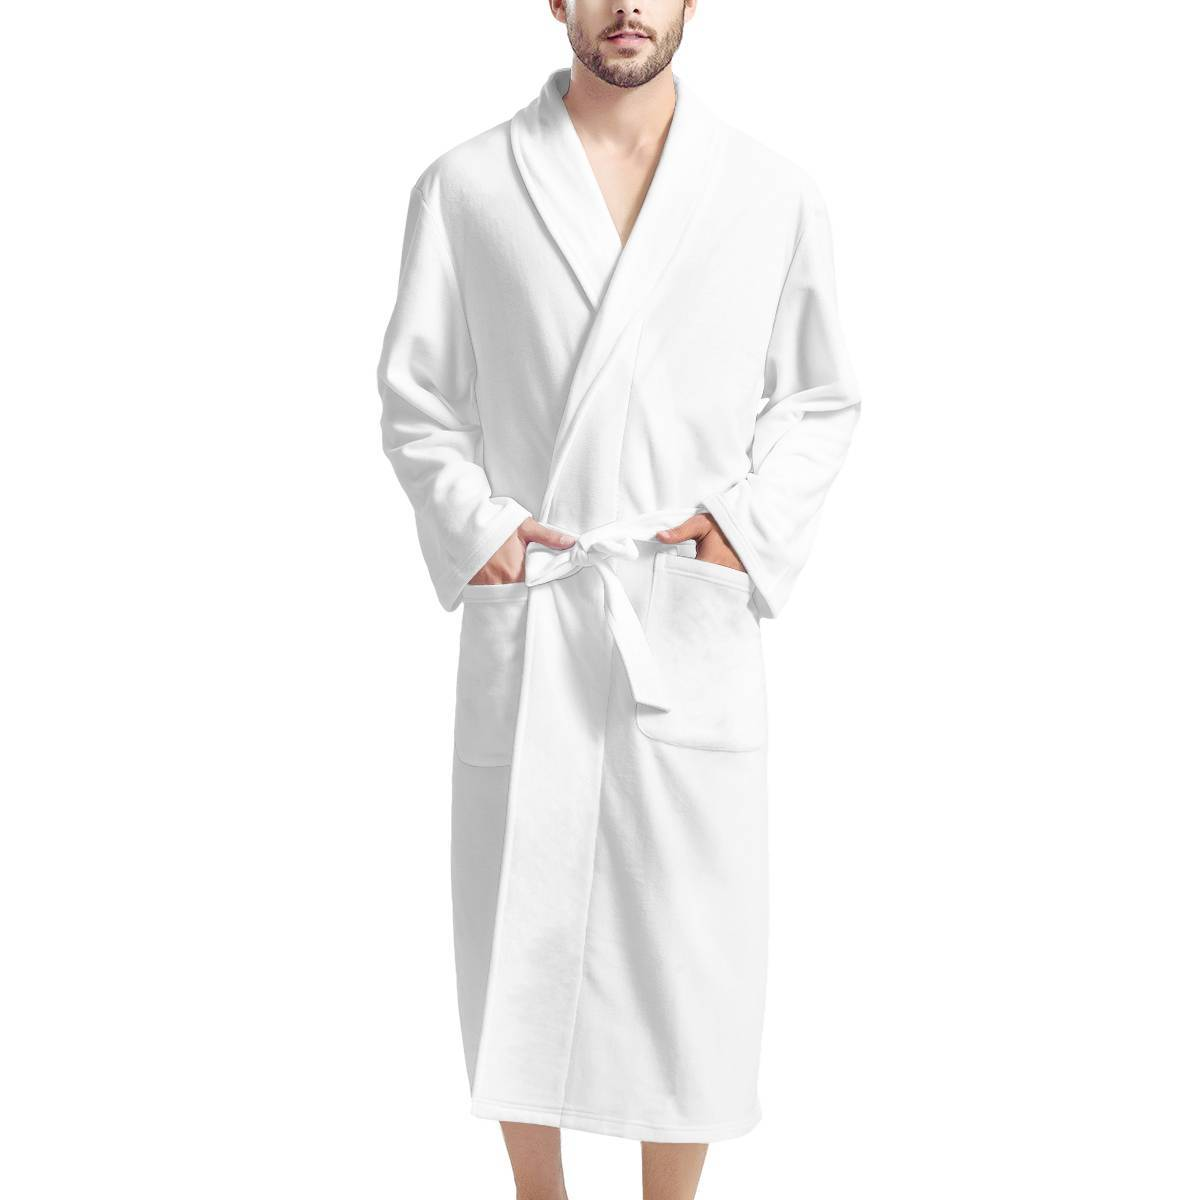 All Over Print Sublimated - Men's Bathrobe